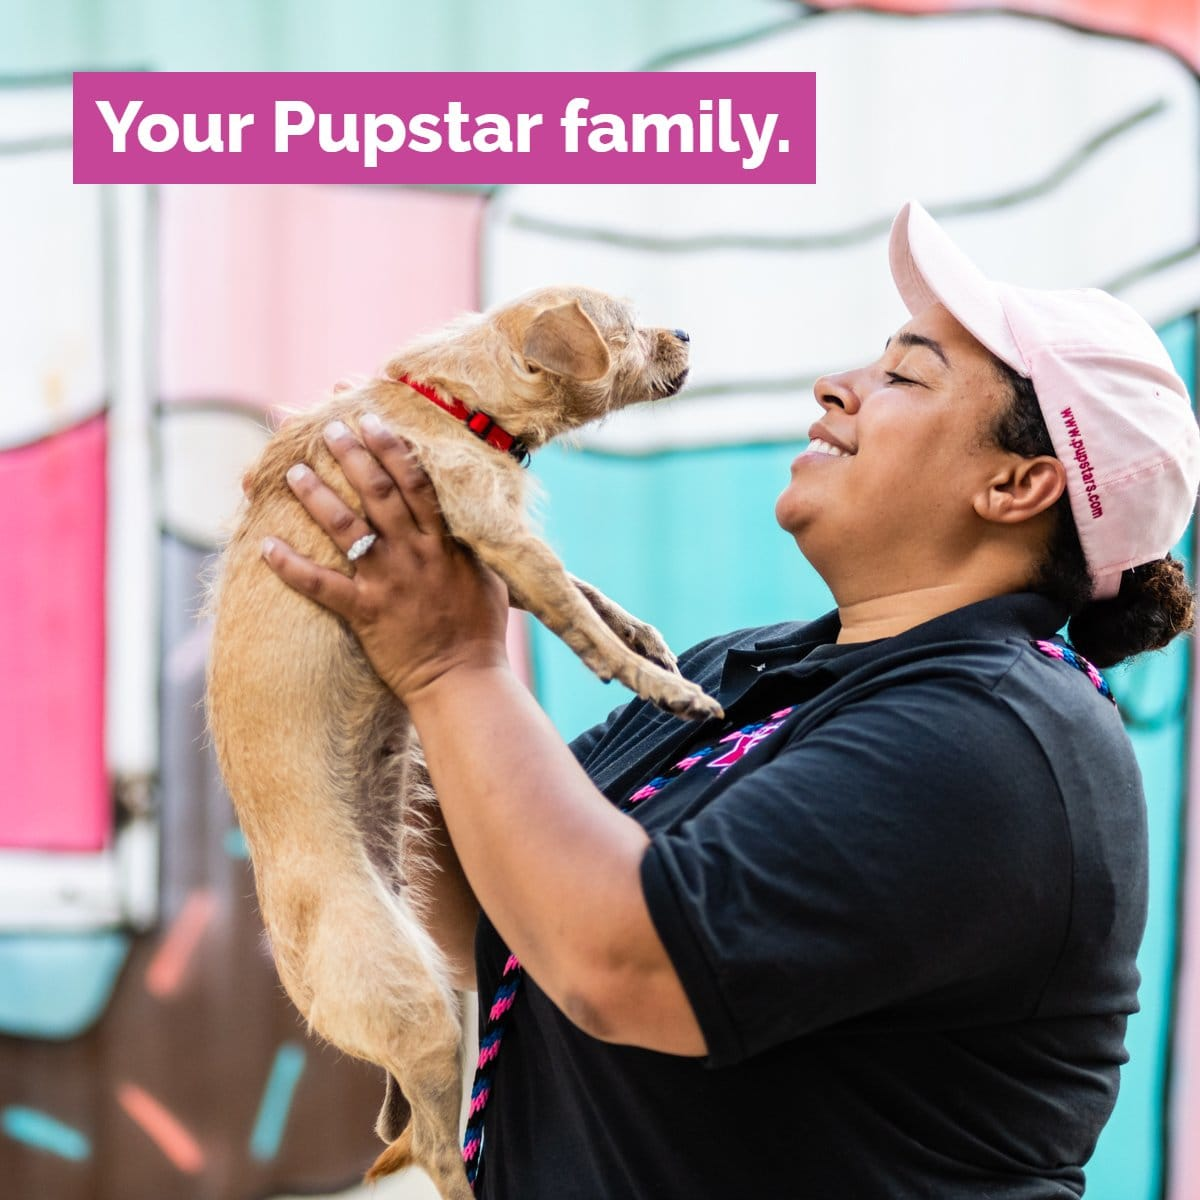 Pupstars pet care